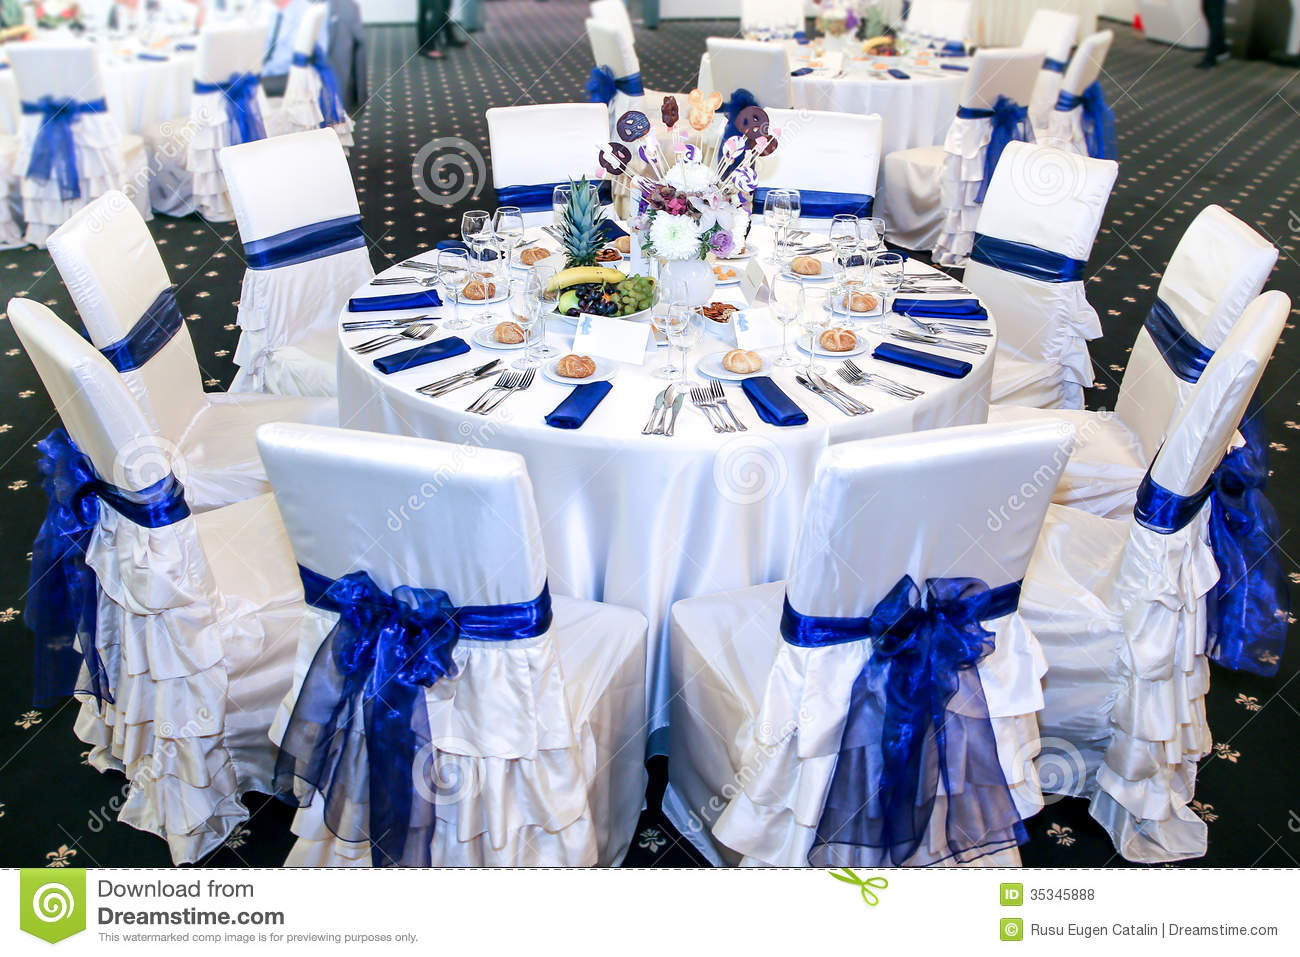 black and white office chair with Royalty Free Stock Photos Table Event Wedding Decorations Arrangements Image35345888 on 68 Dining Tables in addition White Bedroom Desk Furniture besides 62574 OH KS06 NW together with Arne Jacobsen Series 7 Chair Replica likewise Safavieh Adirondack Black Silver White Area Rug ADR112A FV55118.